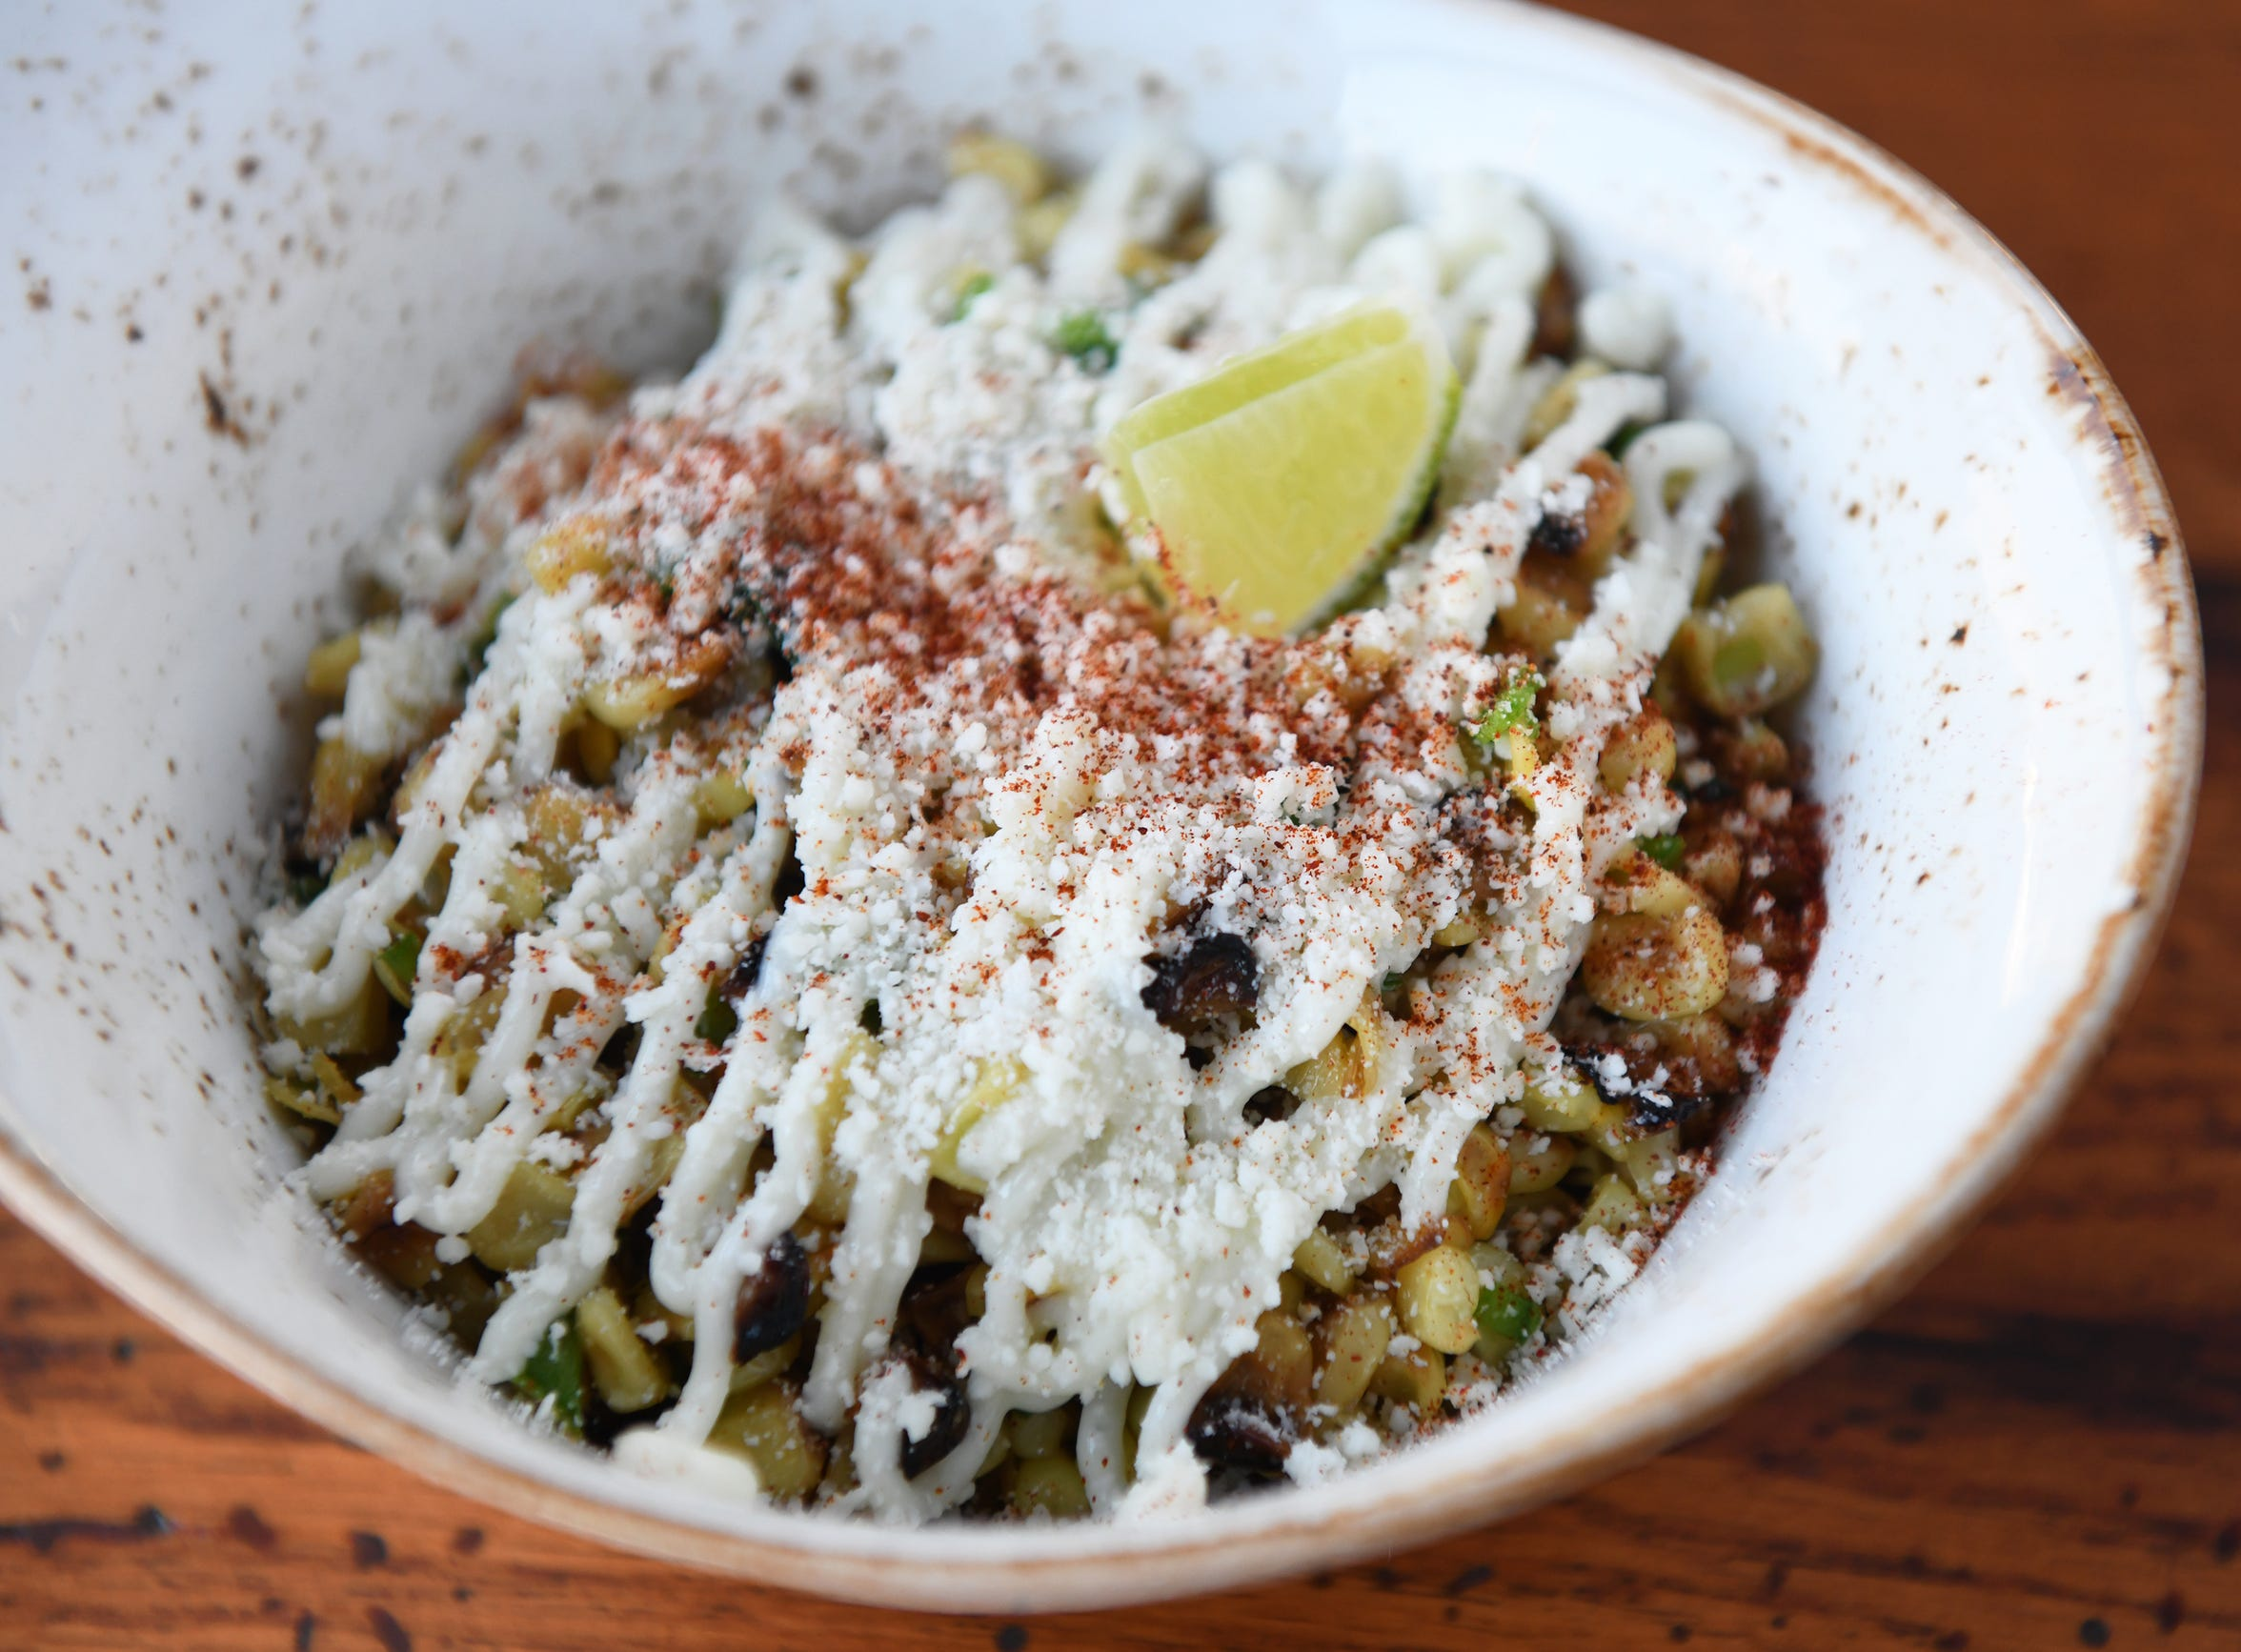 Mexican Street Corn is available as a starter or a side dish at Central Taco and Tequila.